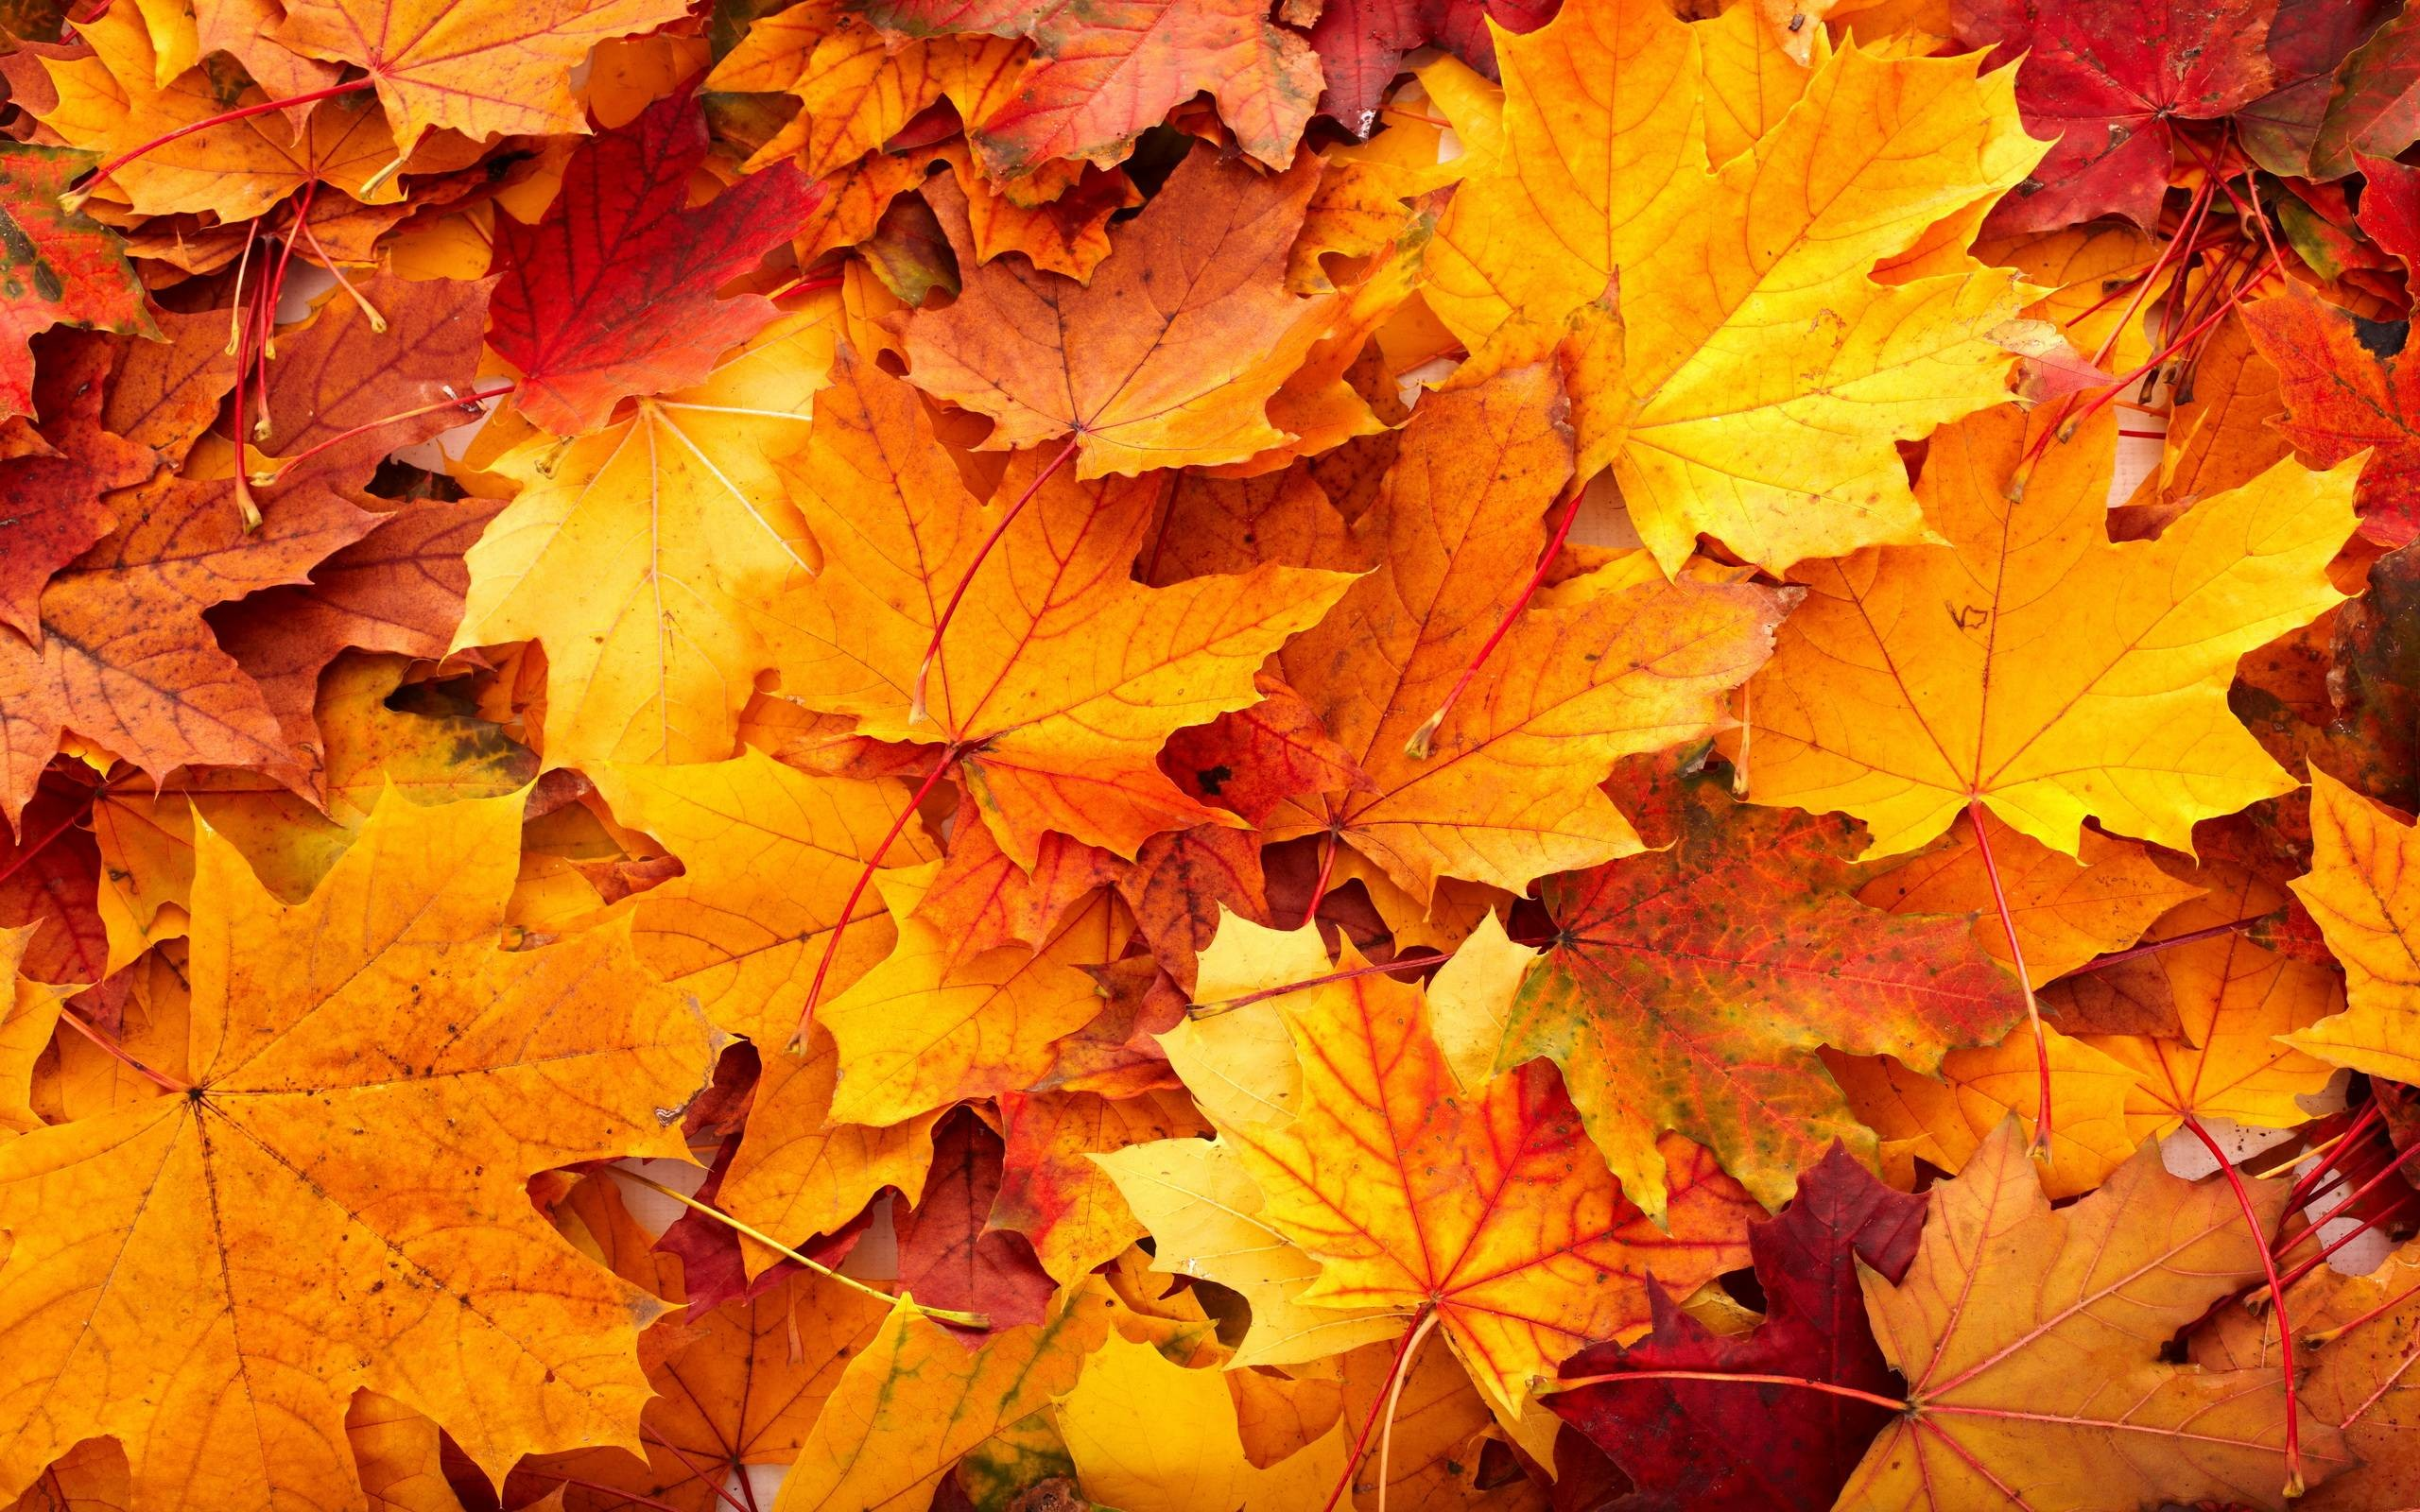 Fall Leaves Wallpaper Desktop 60 Pictures